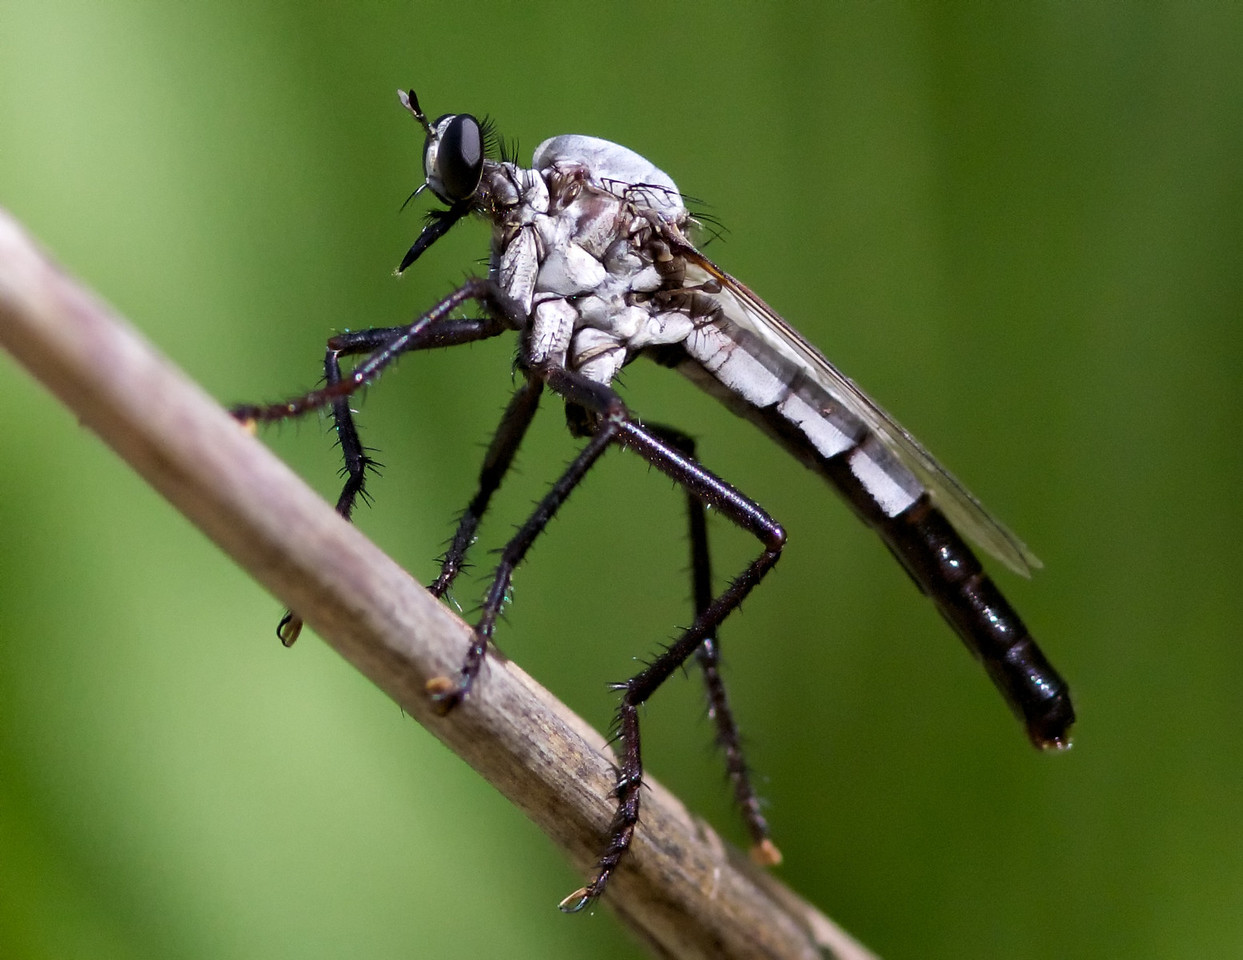 A robber fly.